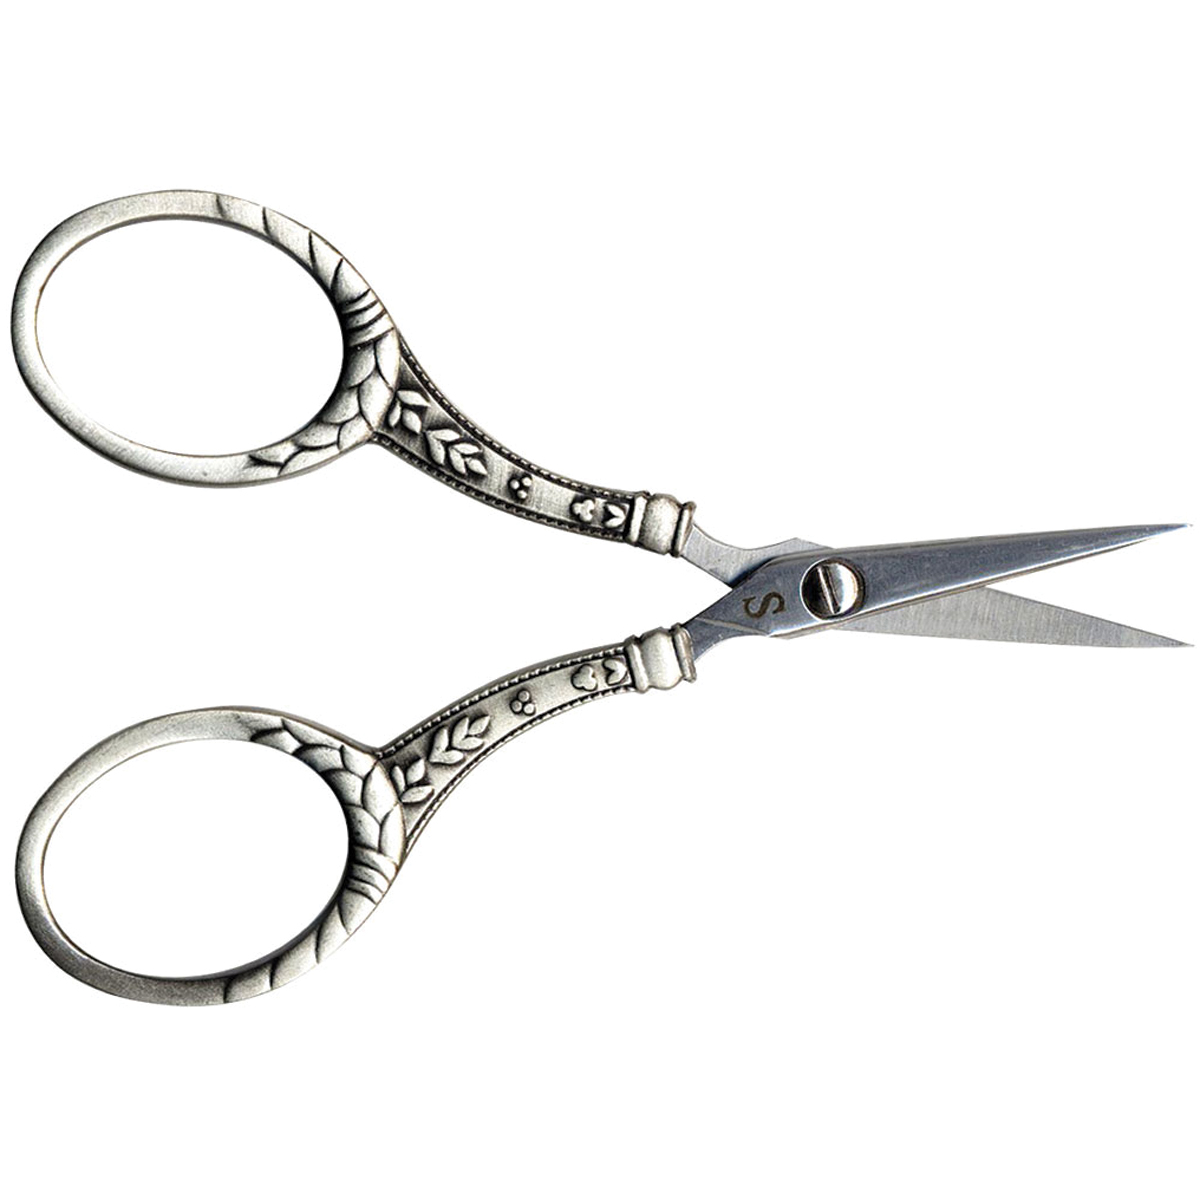 Stainless Steel Embroidery Scissors 4\u0022-Silver Round